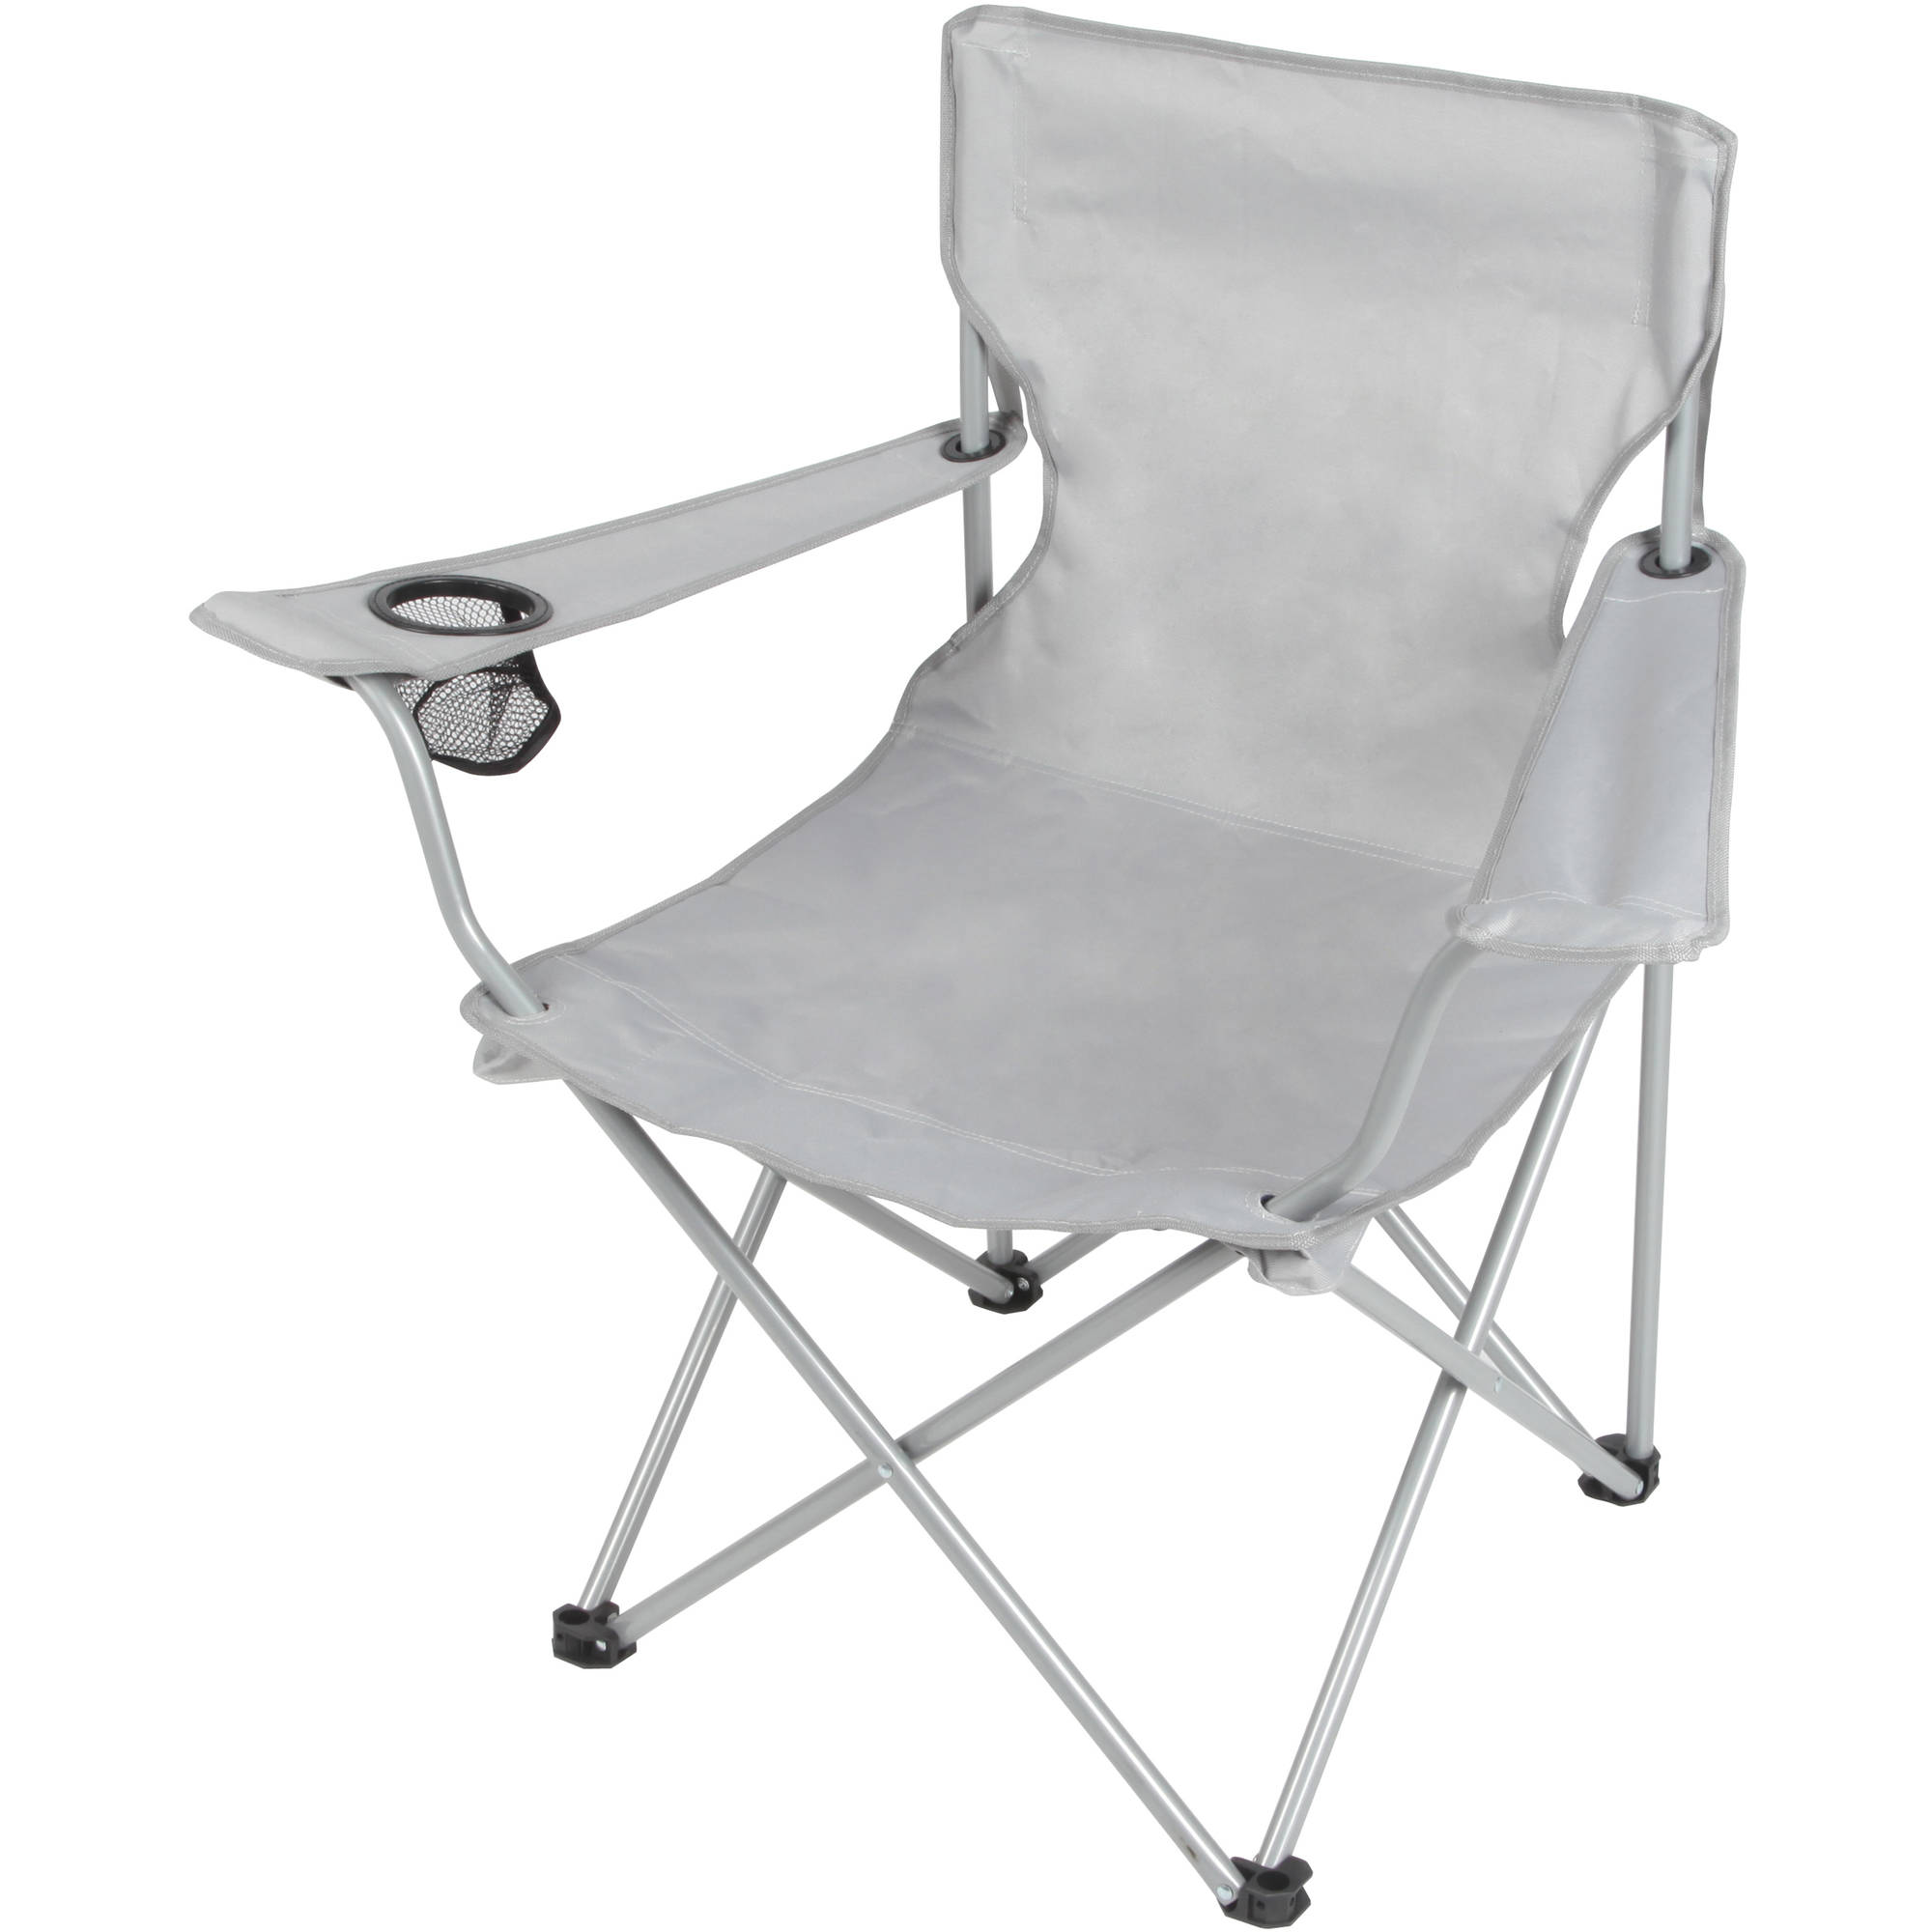 Ozark Trail Folding Chair Walmart